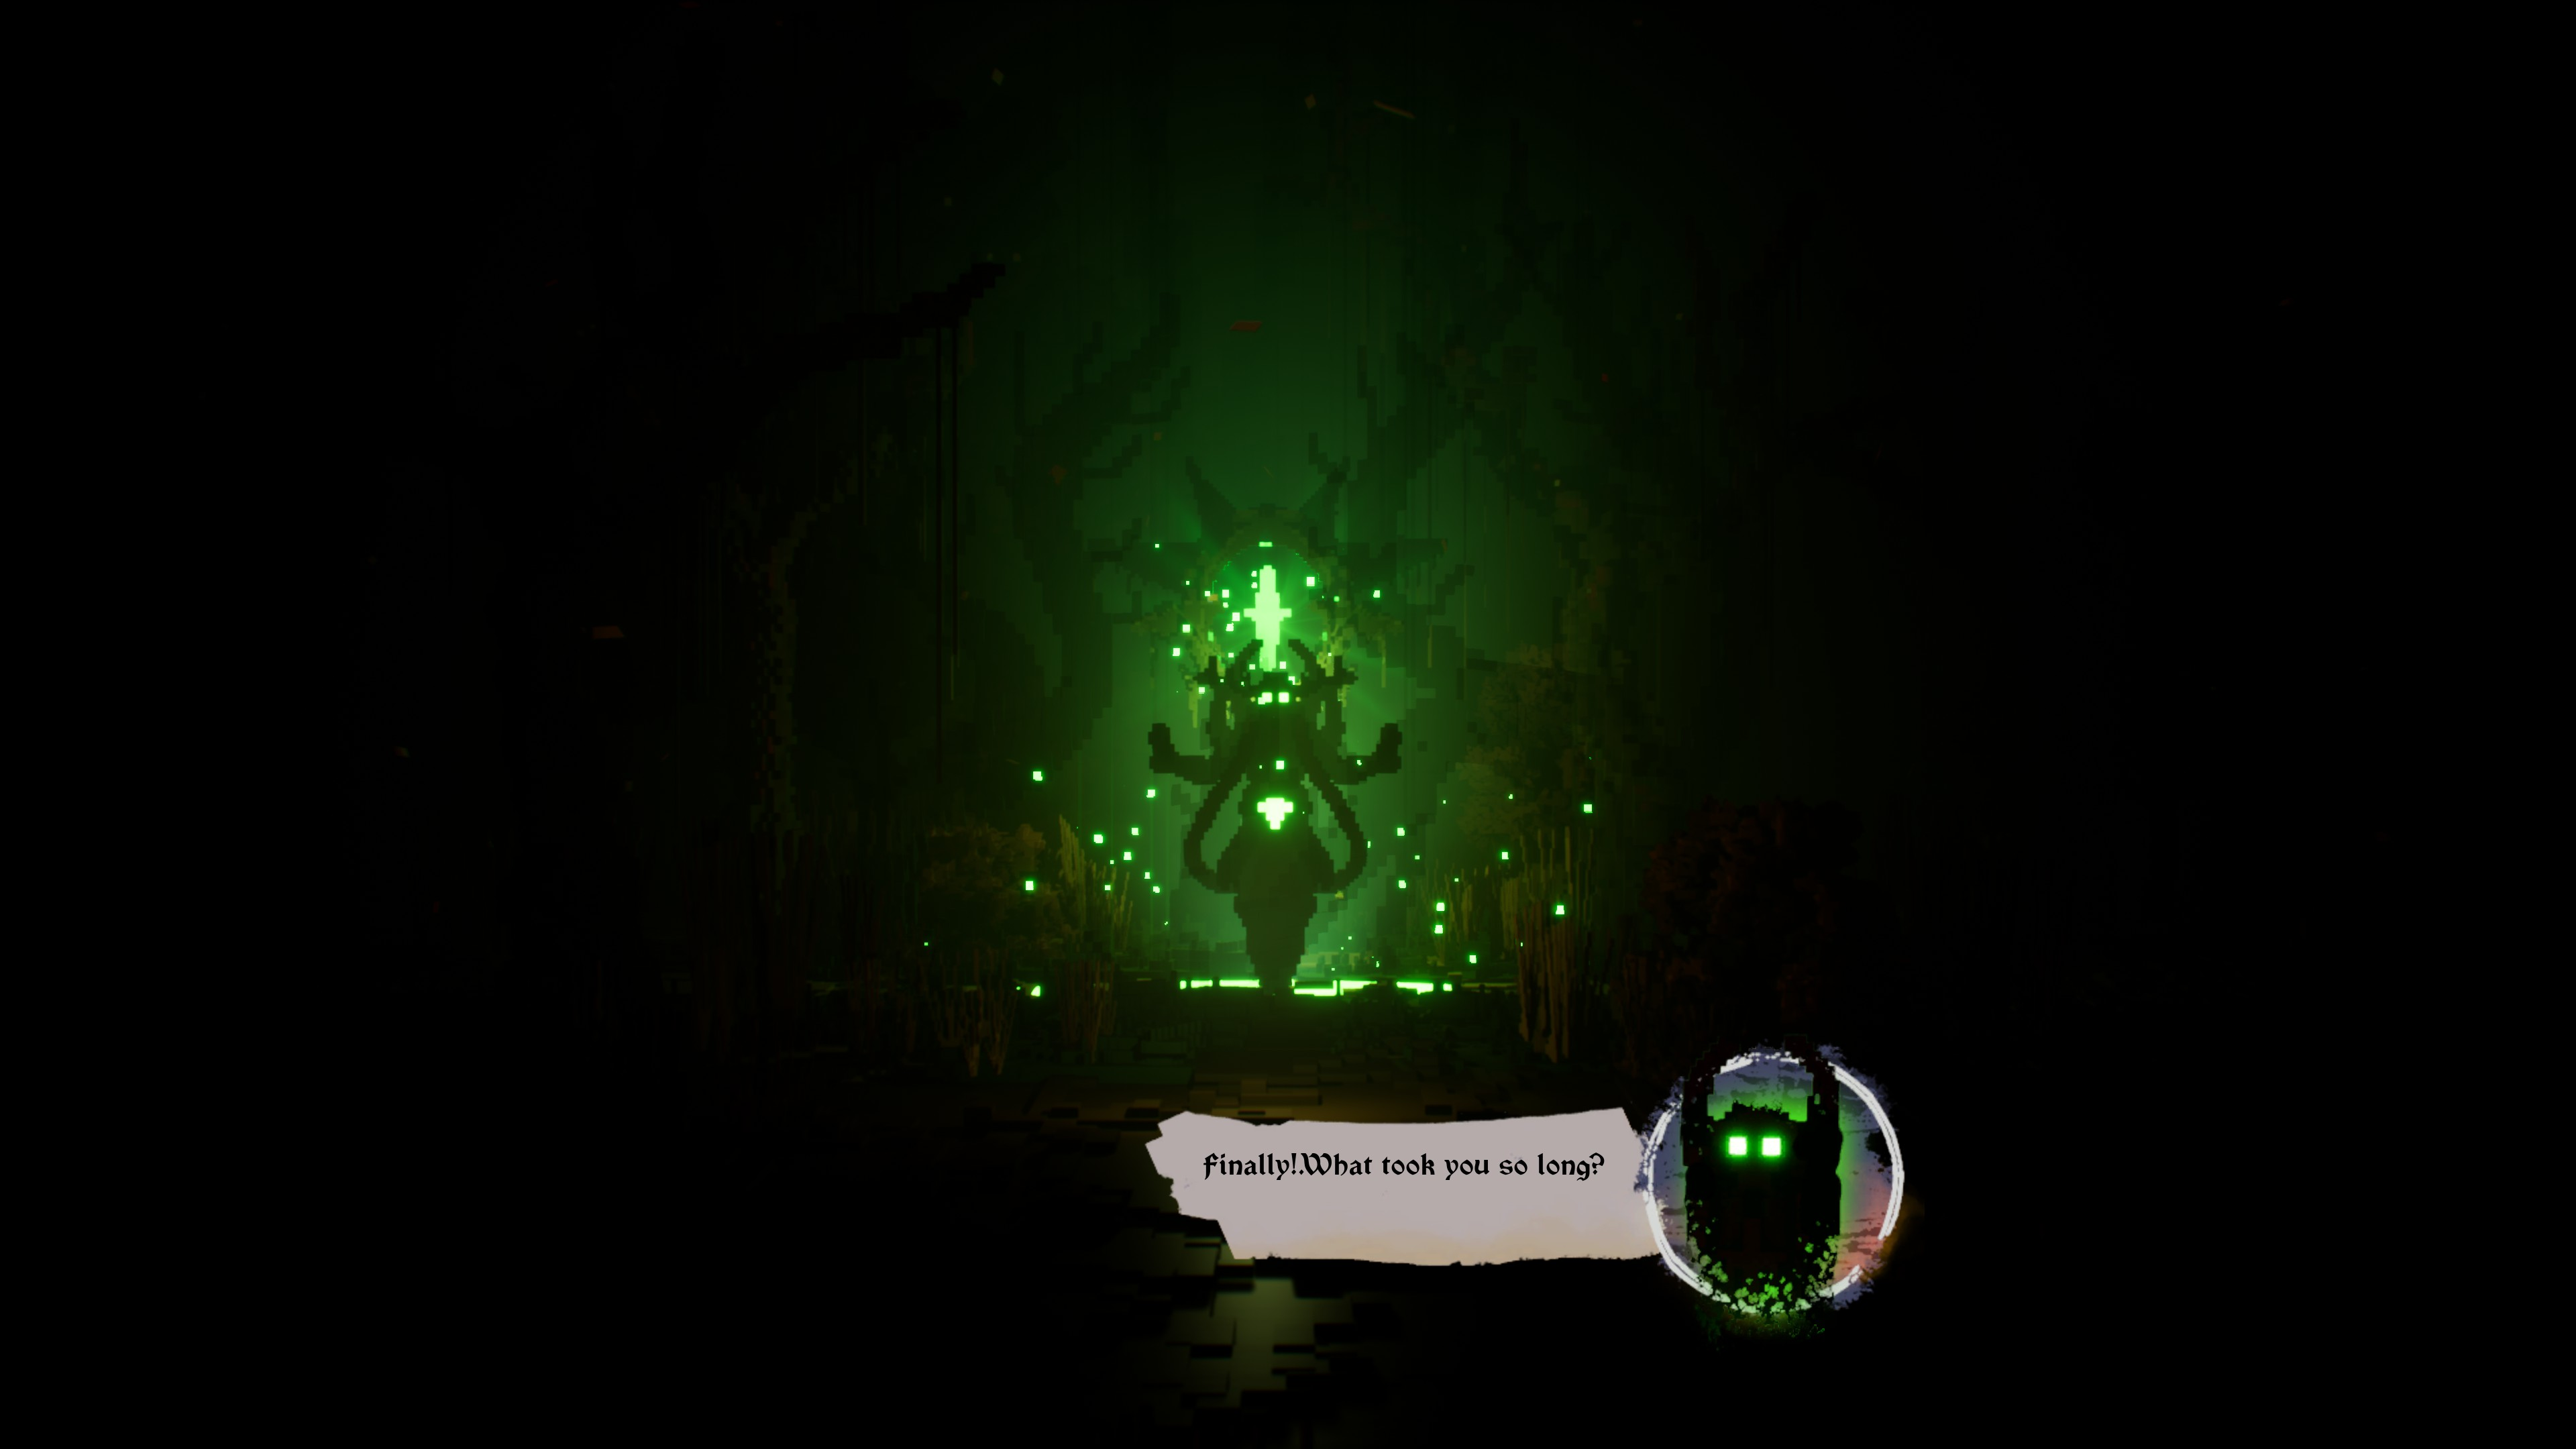 act 1 boss saying finally what took you so long